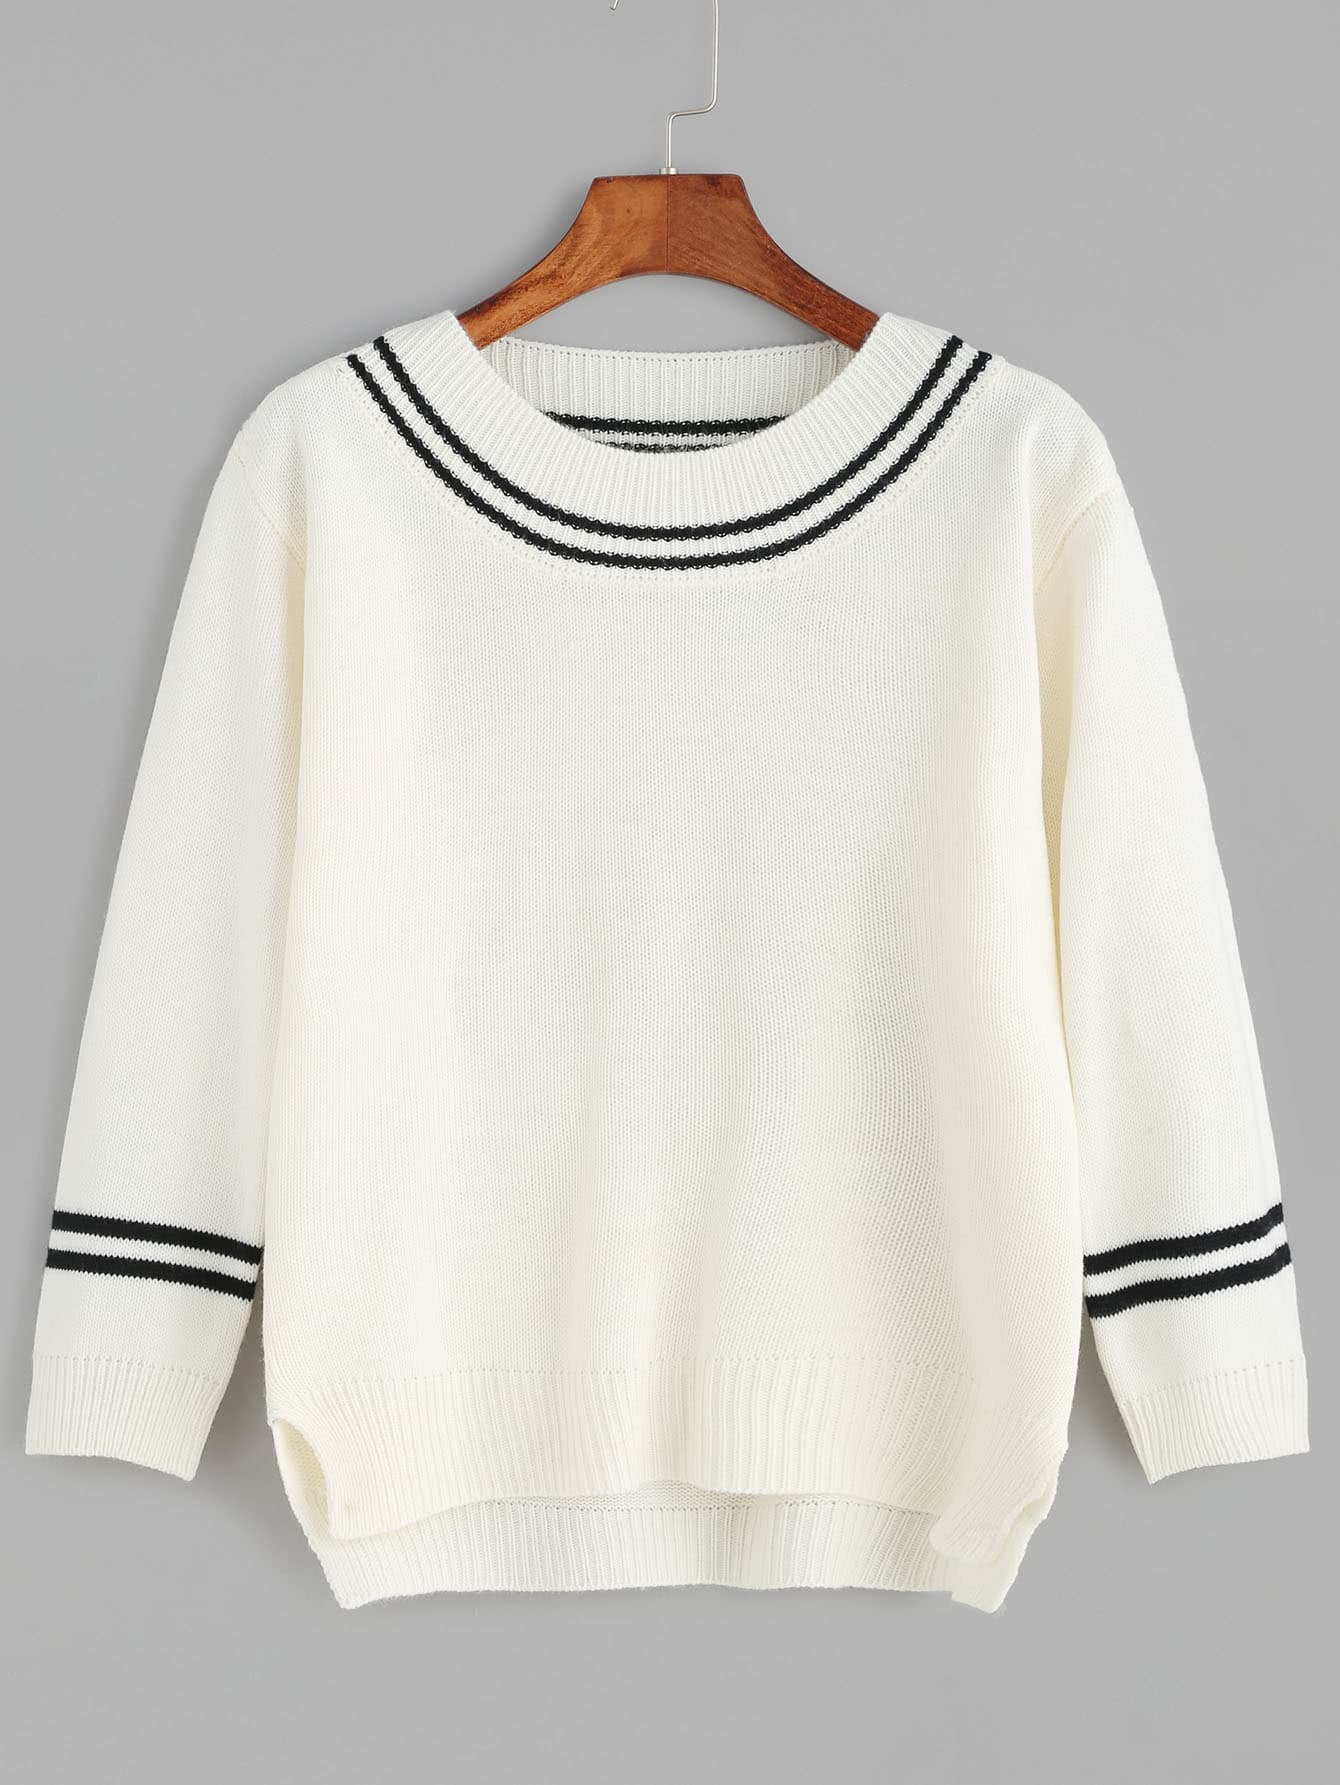 Beige Striped Trim Slit Side High Low Sweater sweater161025102